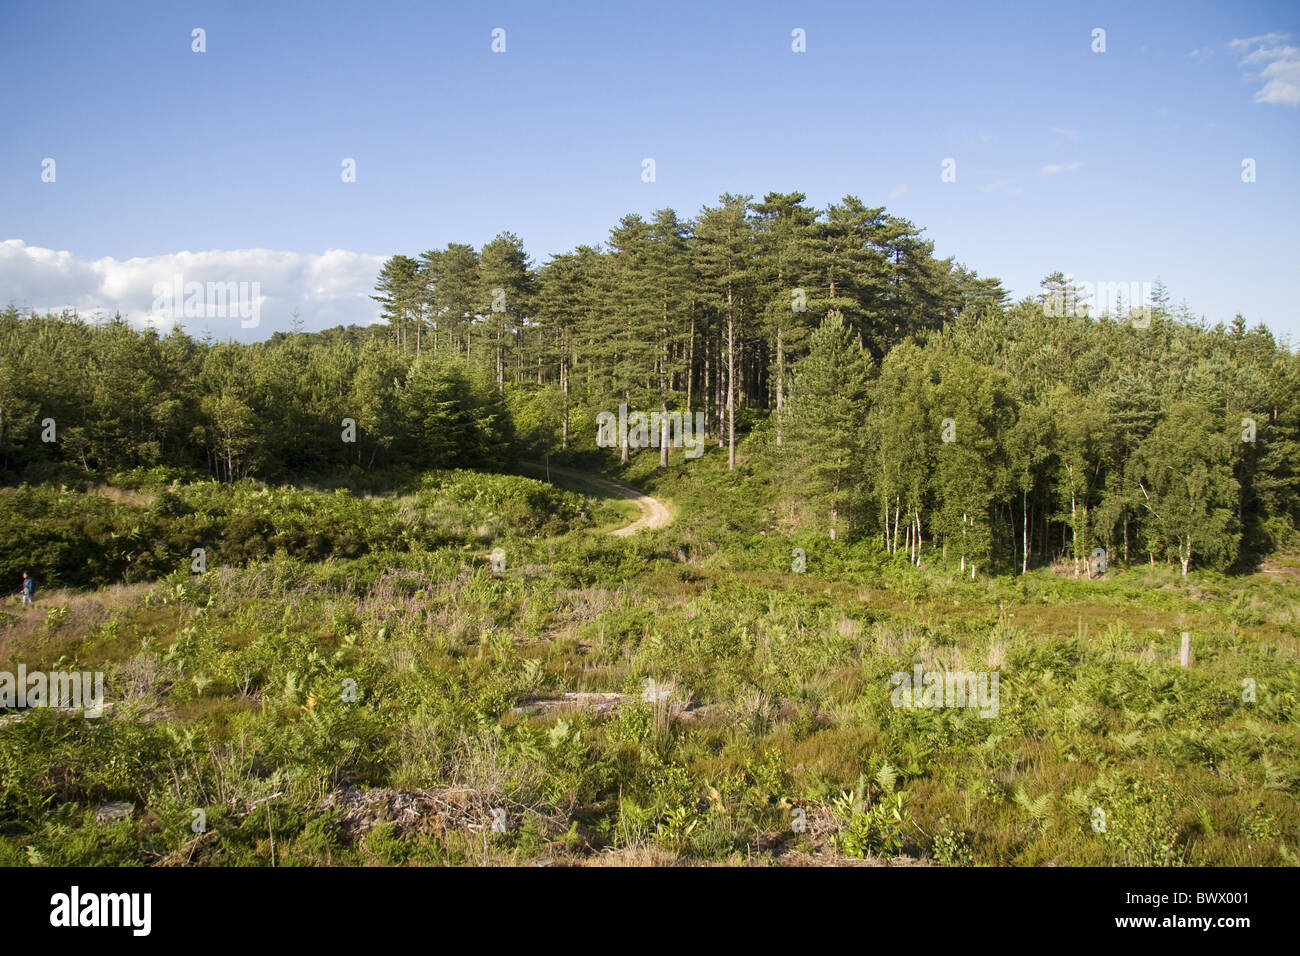 Commercial conifer plantation, recently cleared area in foreground to be managed as heather heathland, Puddletown - Stock Image